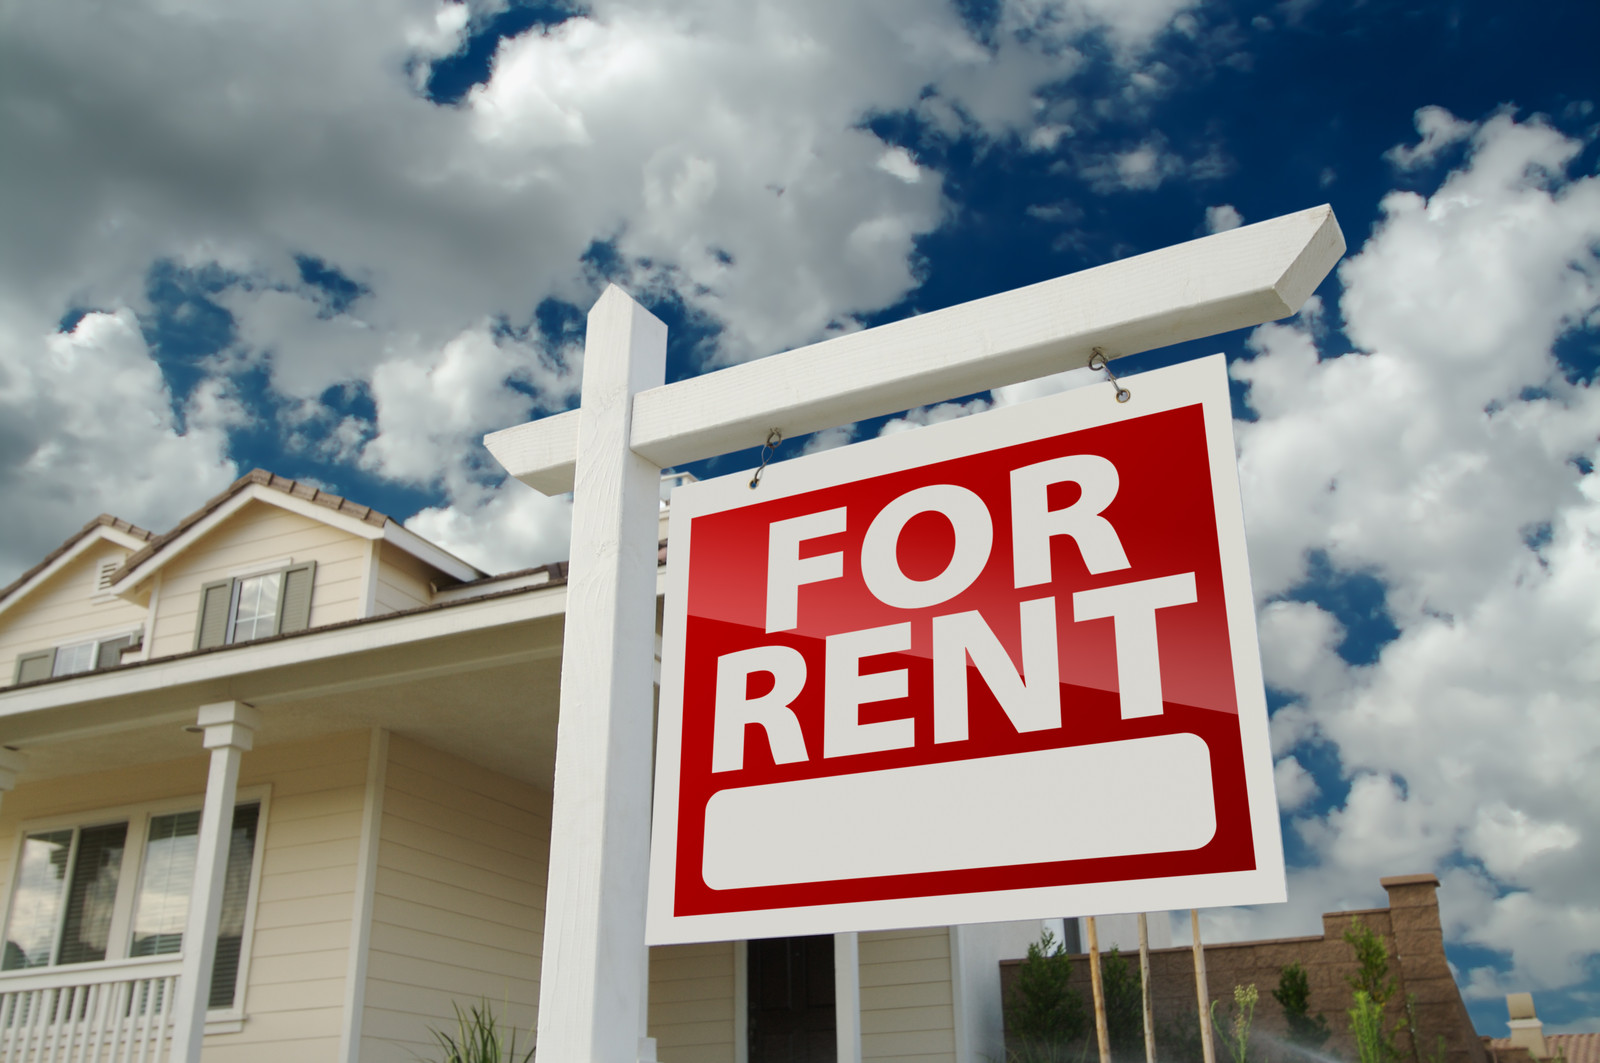 Two Bedroom apartment rents up 5.4% in LA